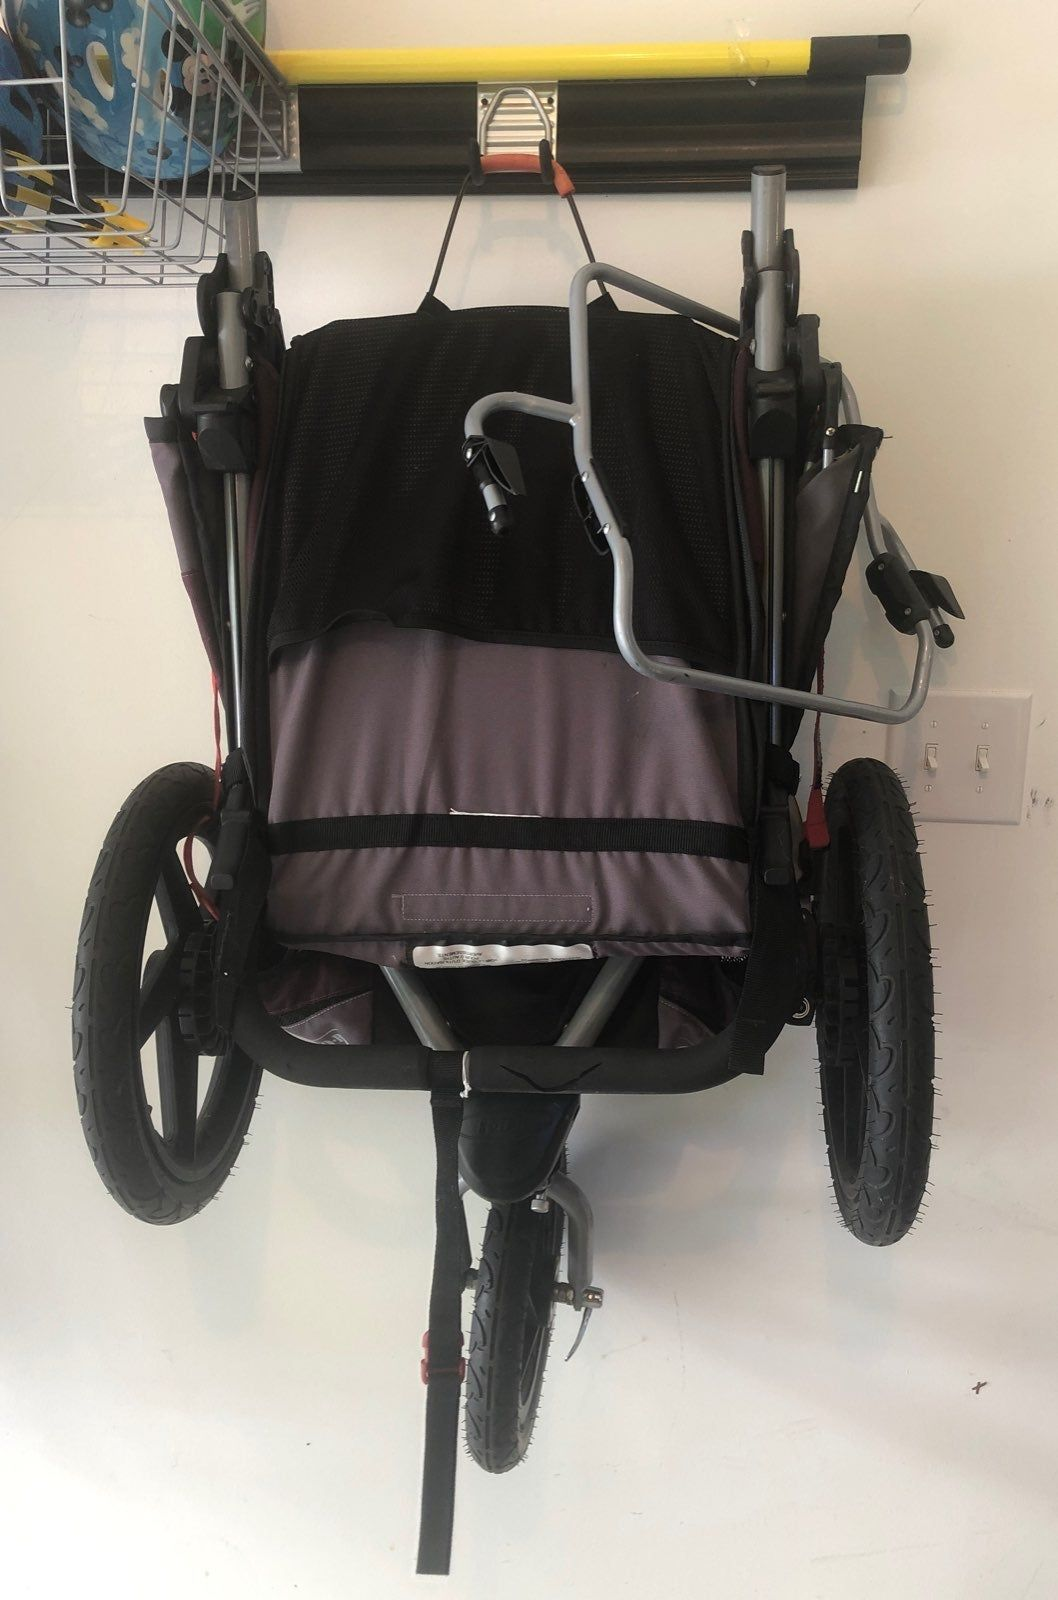 Good condition. Jogging stroller never used for jogging